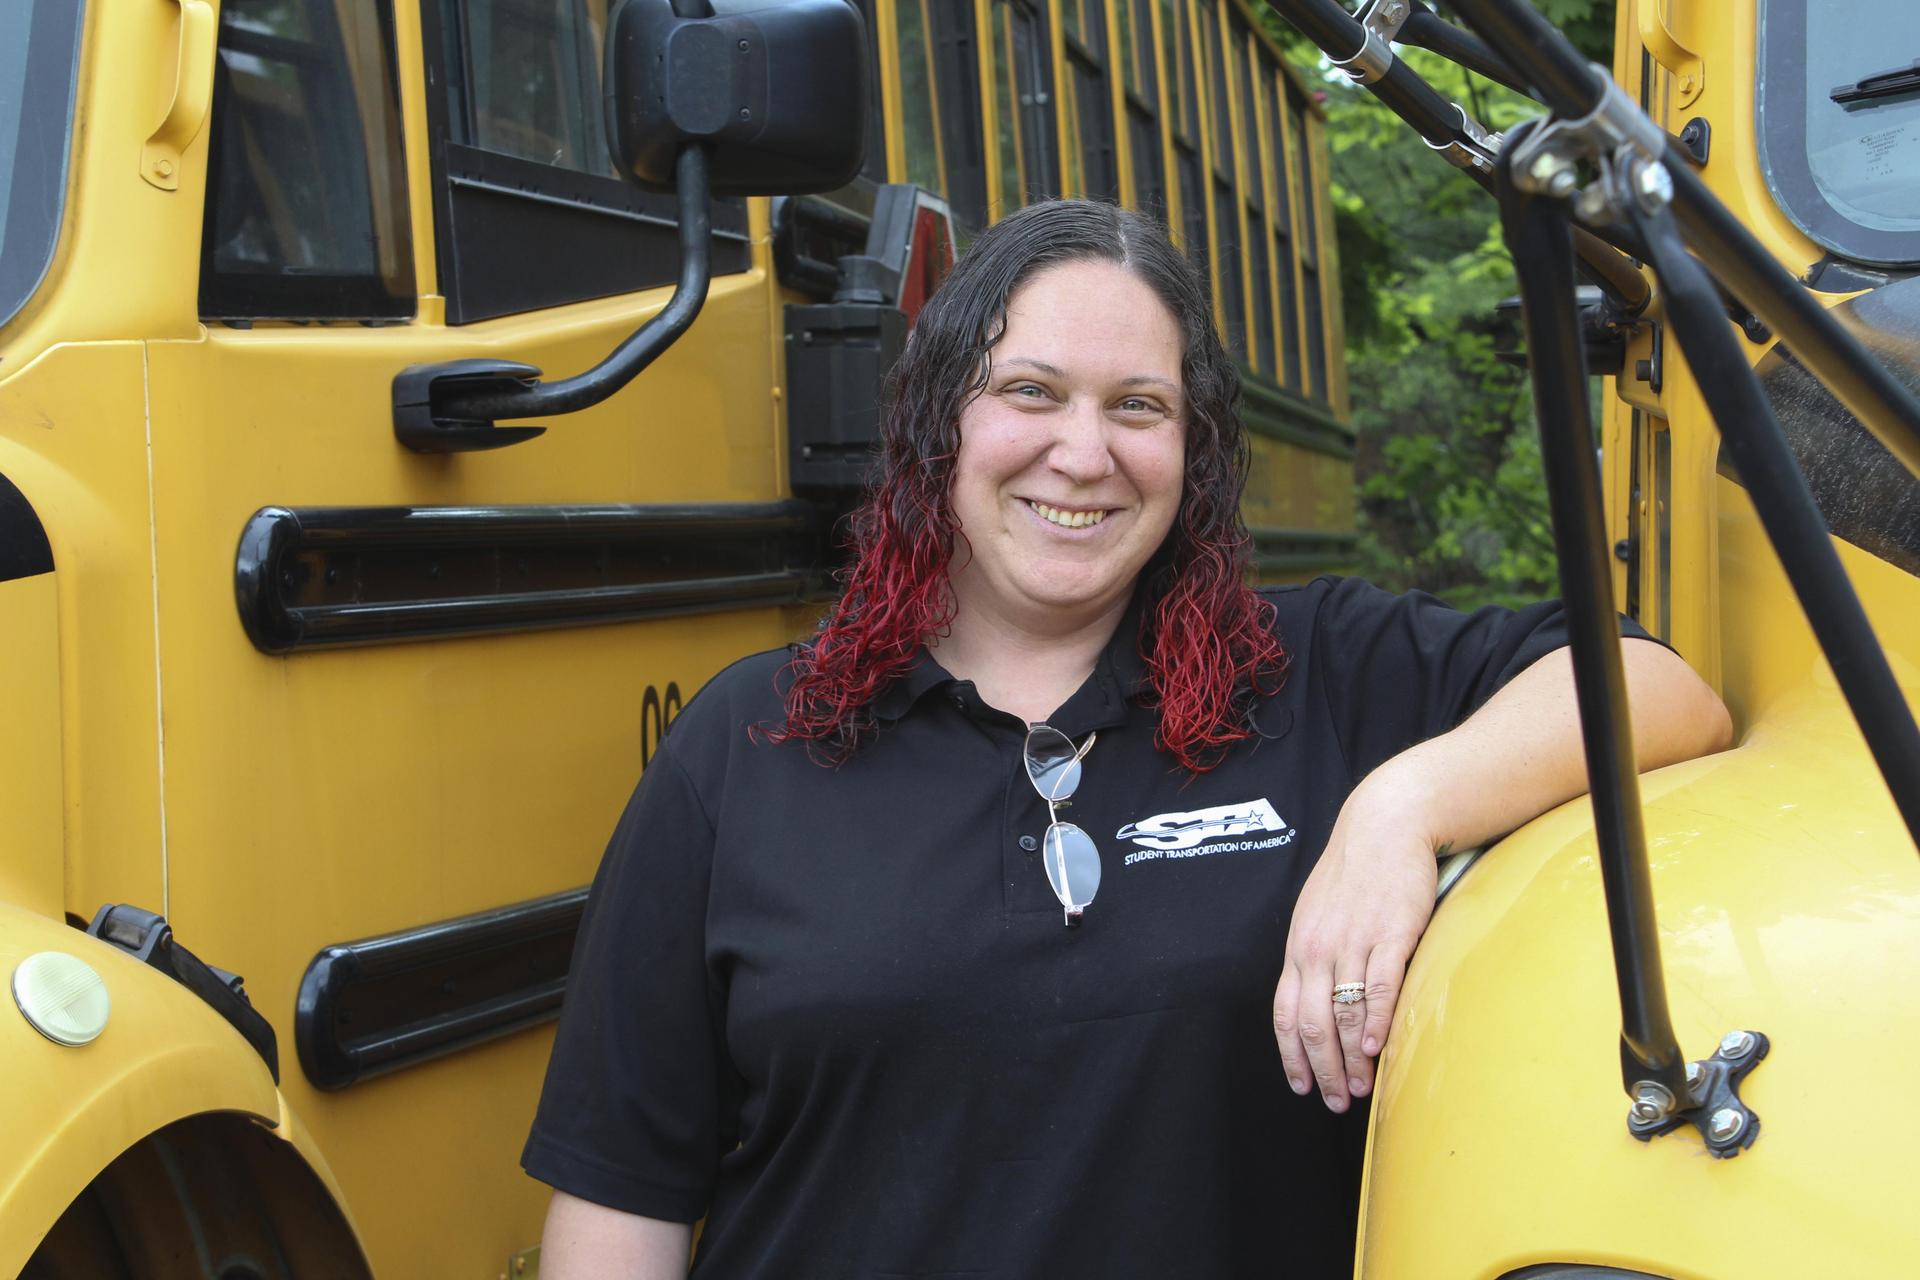 Bus driver posing next to school bus